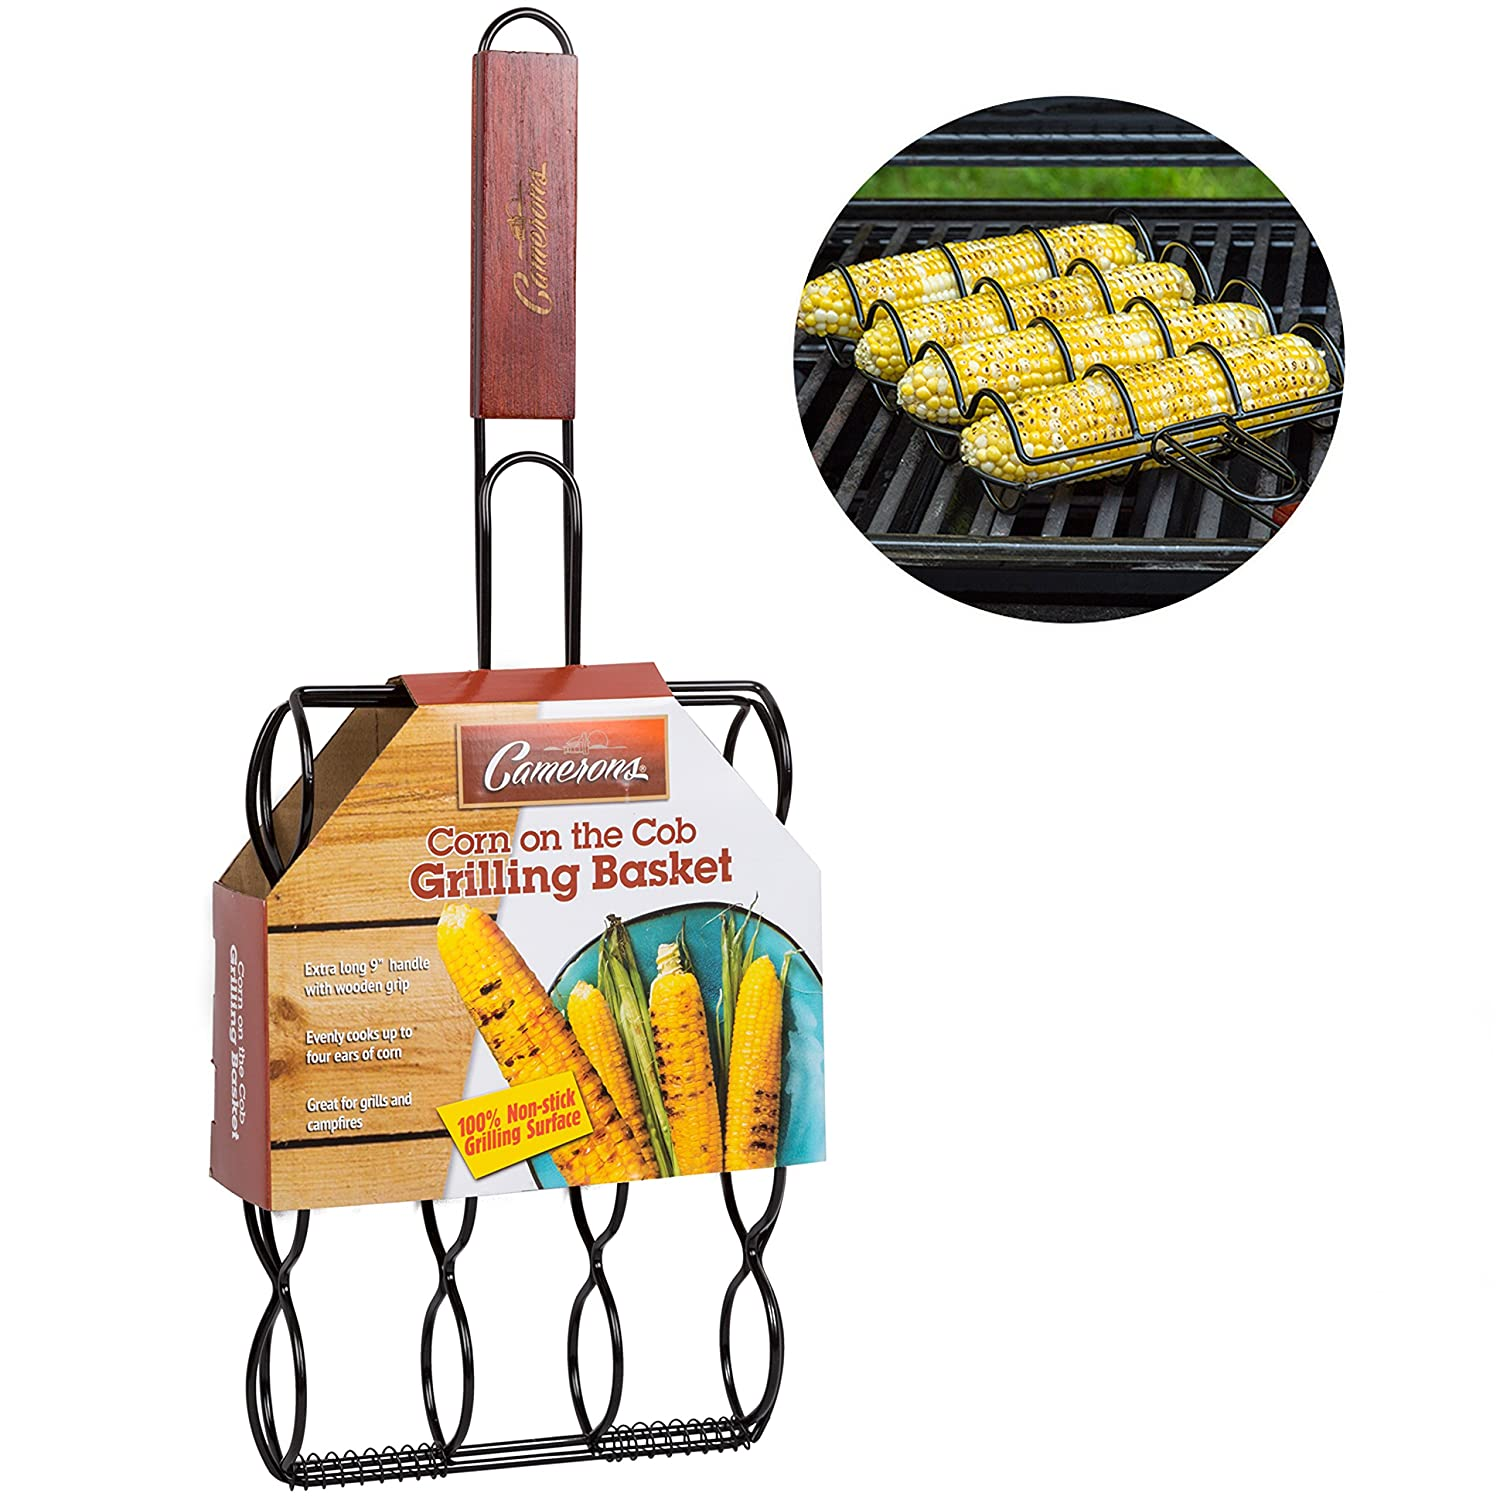 Corn Grilling Basket- 100% Non-Stick Corn Griller with Extra Long 9 Rosewood Handle- Evenly Cooks 4 Ears of Corn on The Cob! Camerons Products CAM-CGB-898